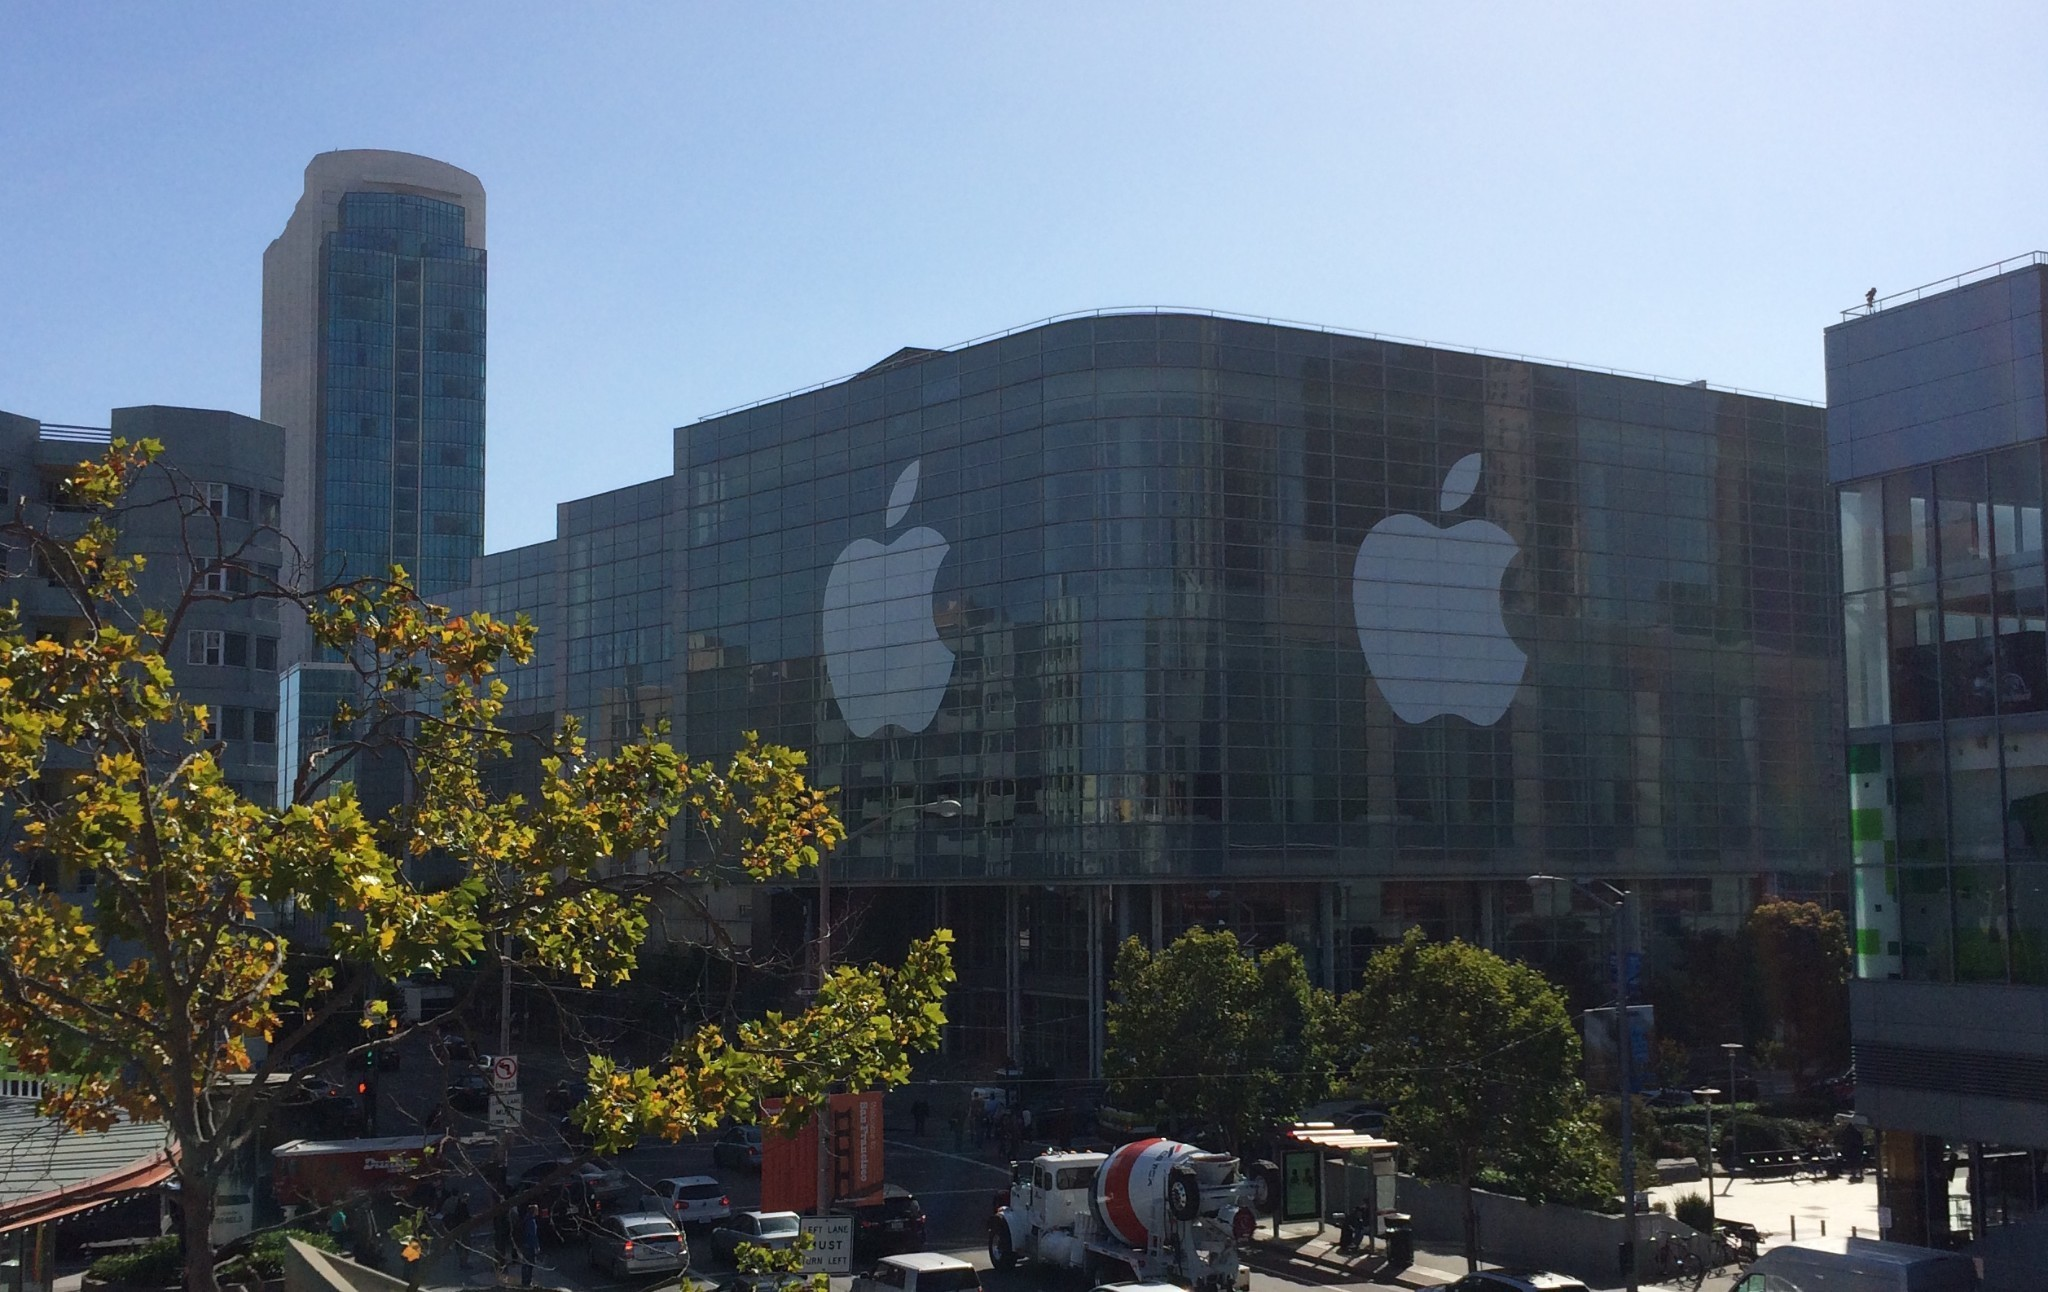 Coming at WWDC 2015: New Apple Watch SDK, Quality-focused/refreshed iOS 9 & OS X 10.11, Apple Music